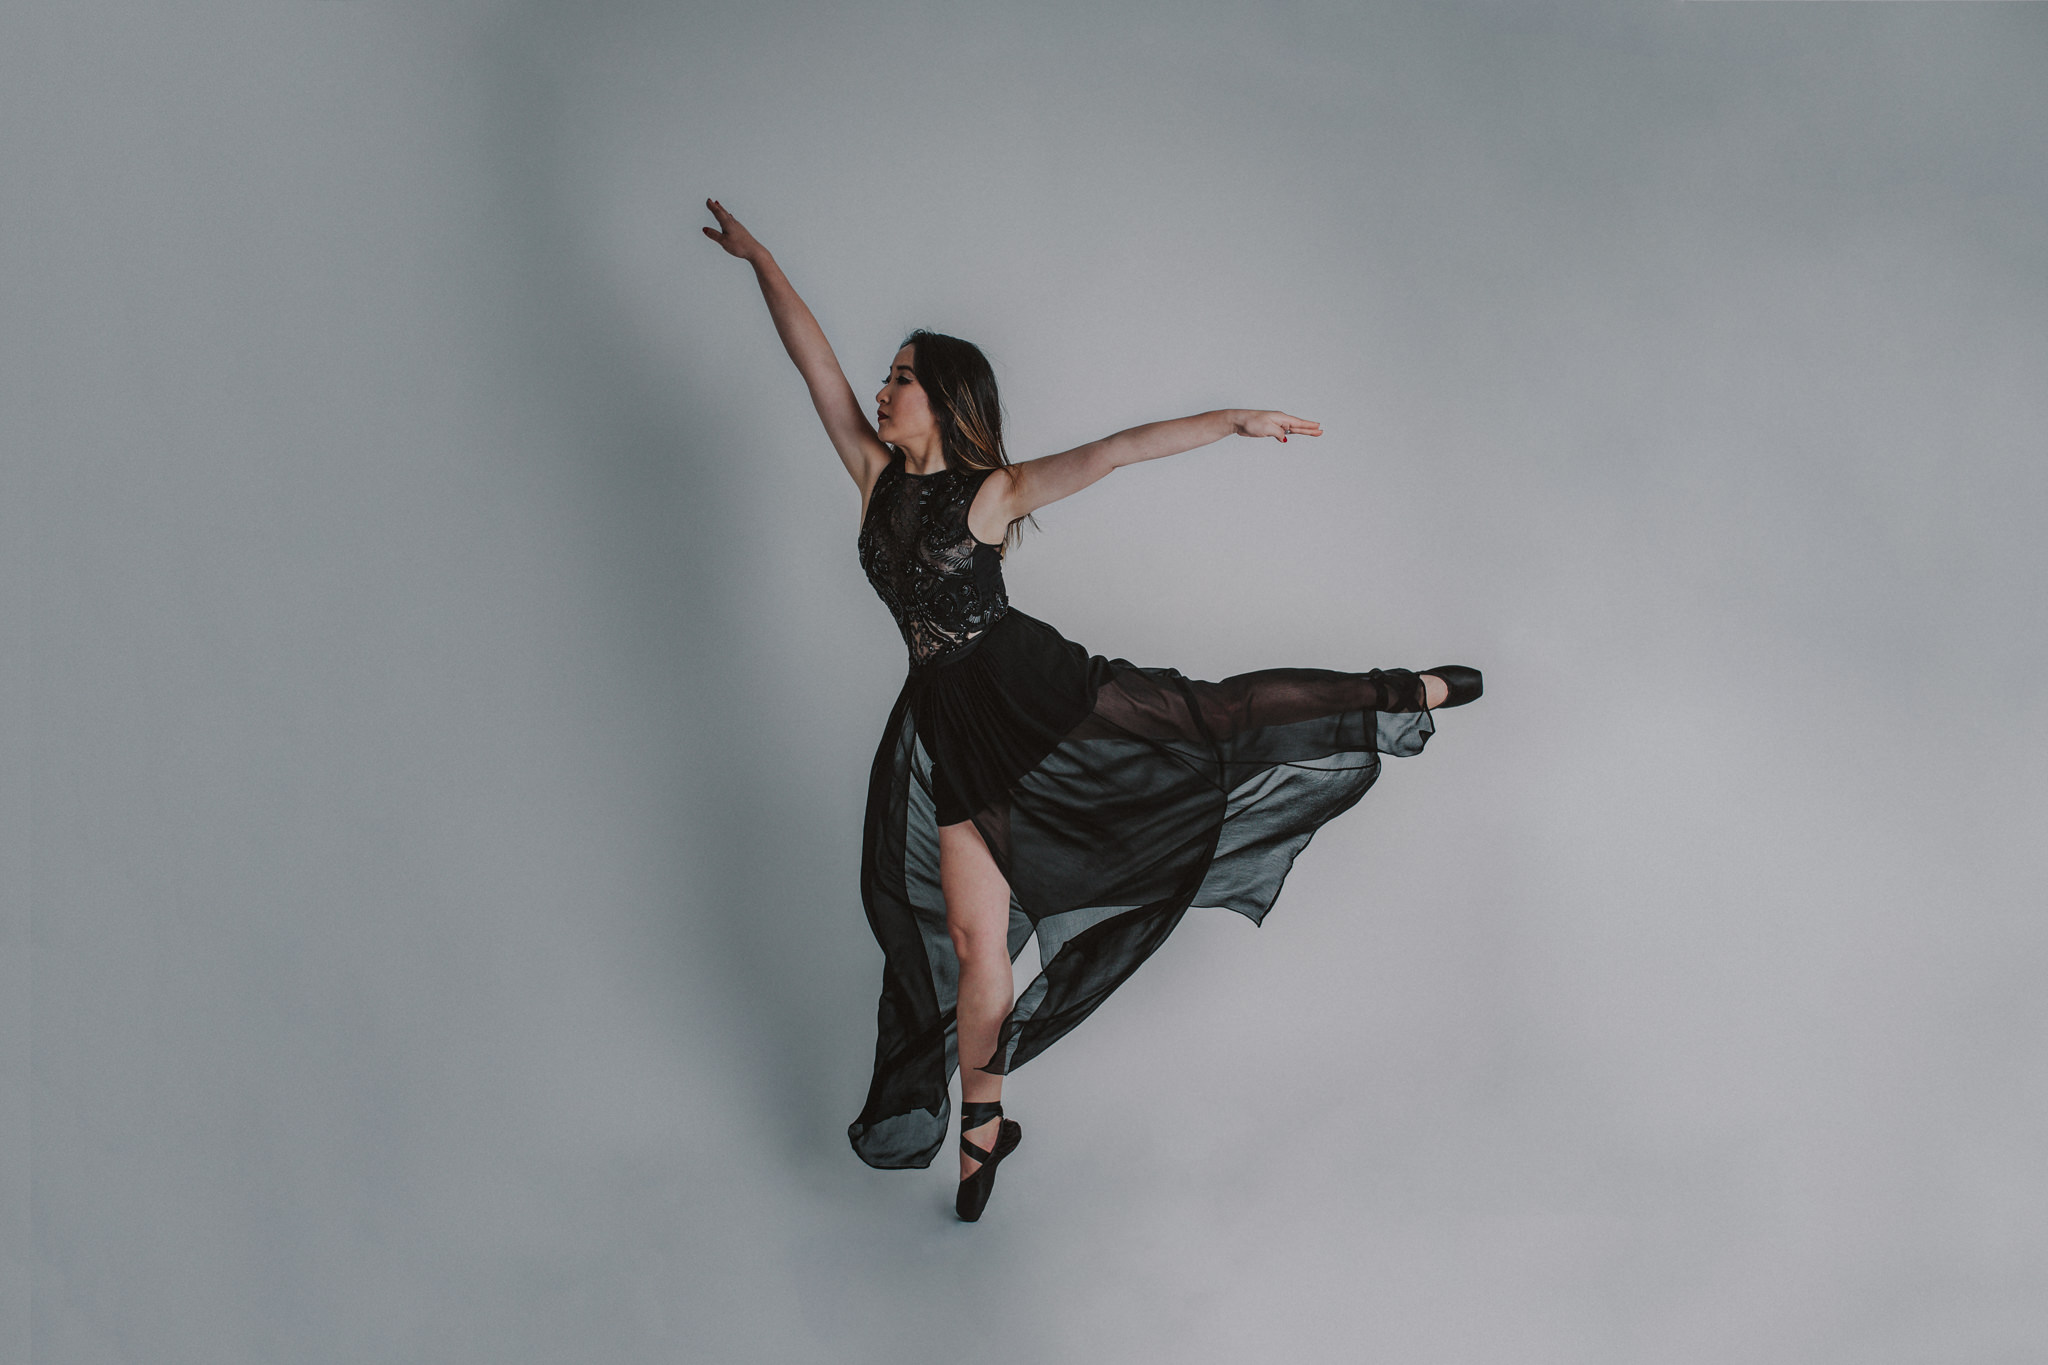 dance in photostudio - model and photographer create amazing photographs